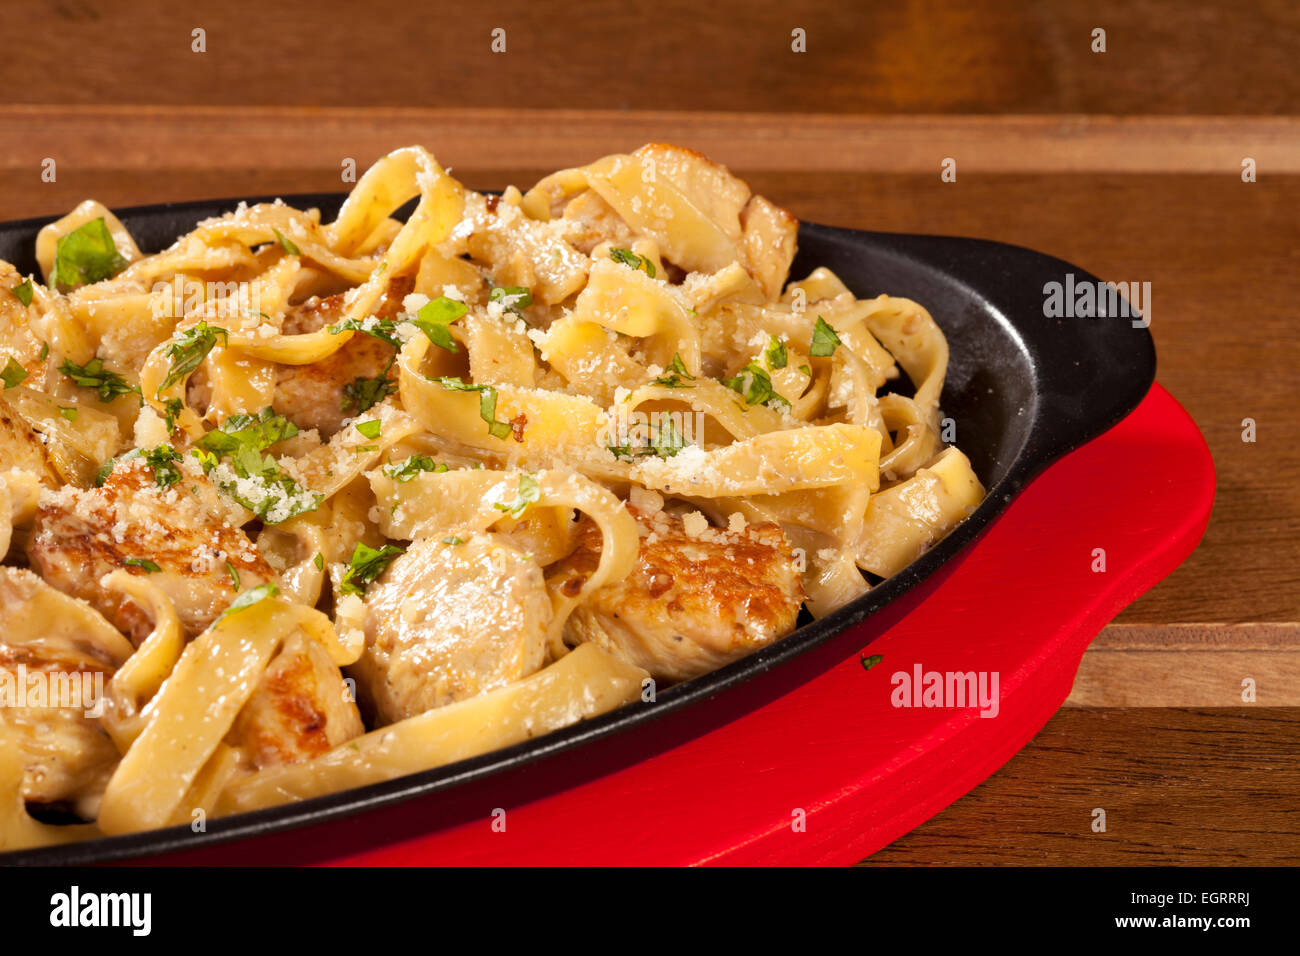 Pasta chicken meat food plate red cooked sauce cuisine italian ...